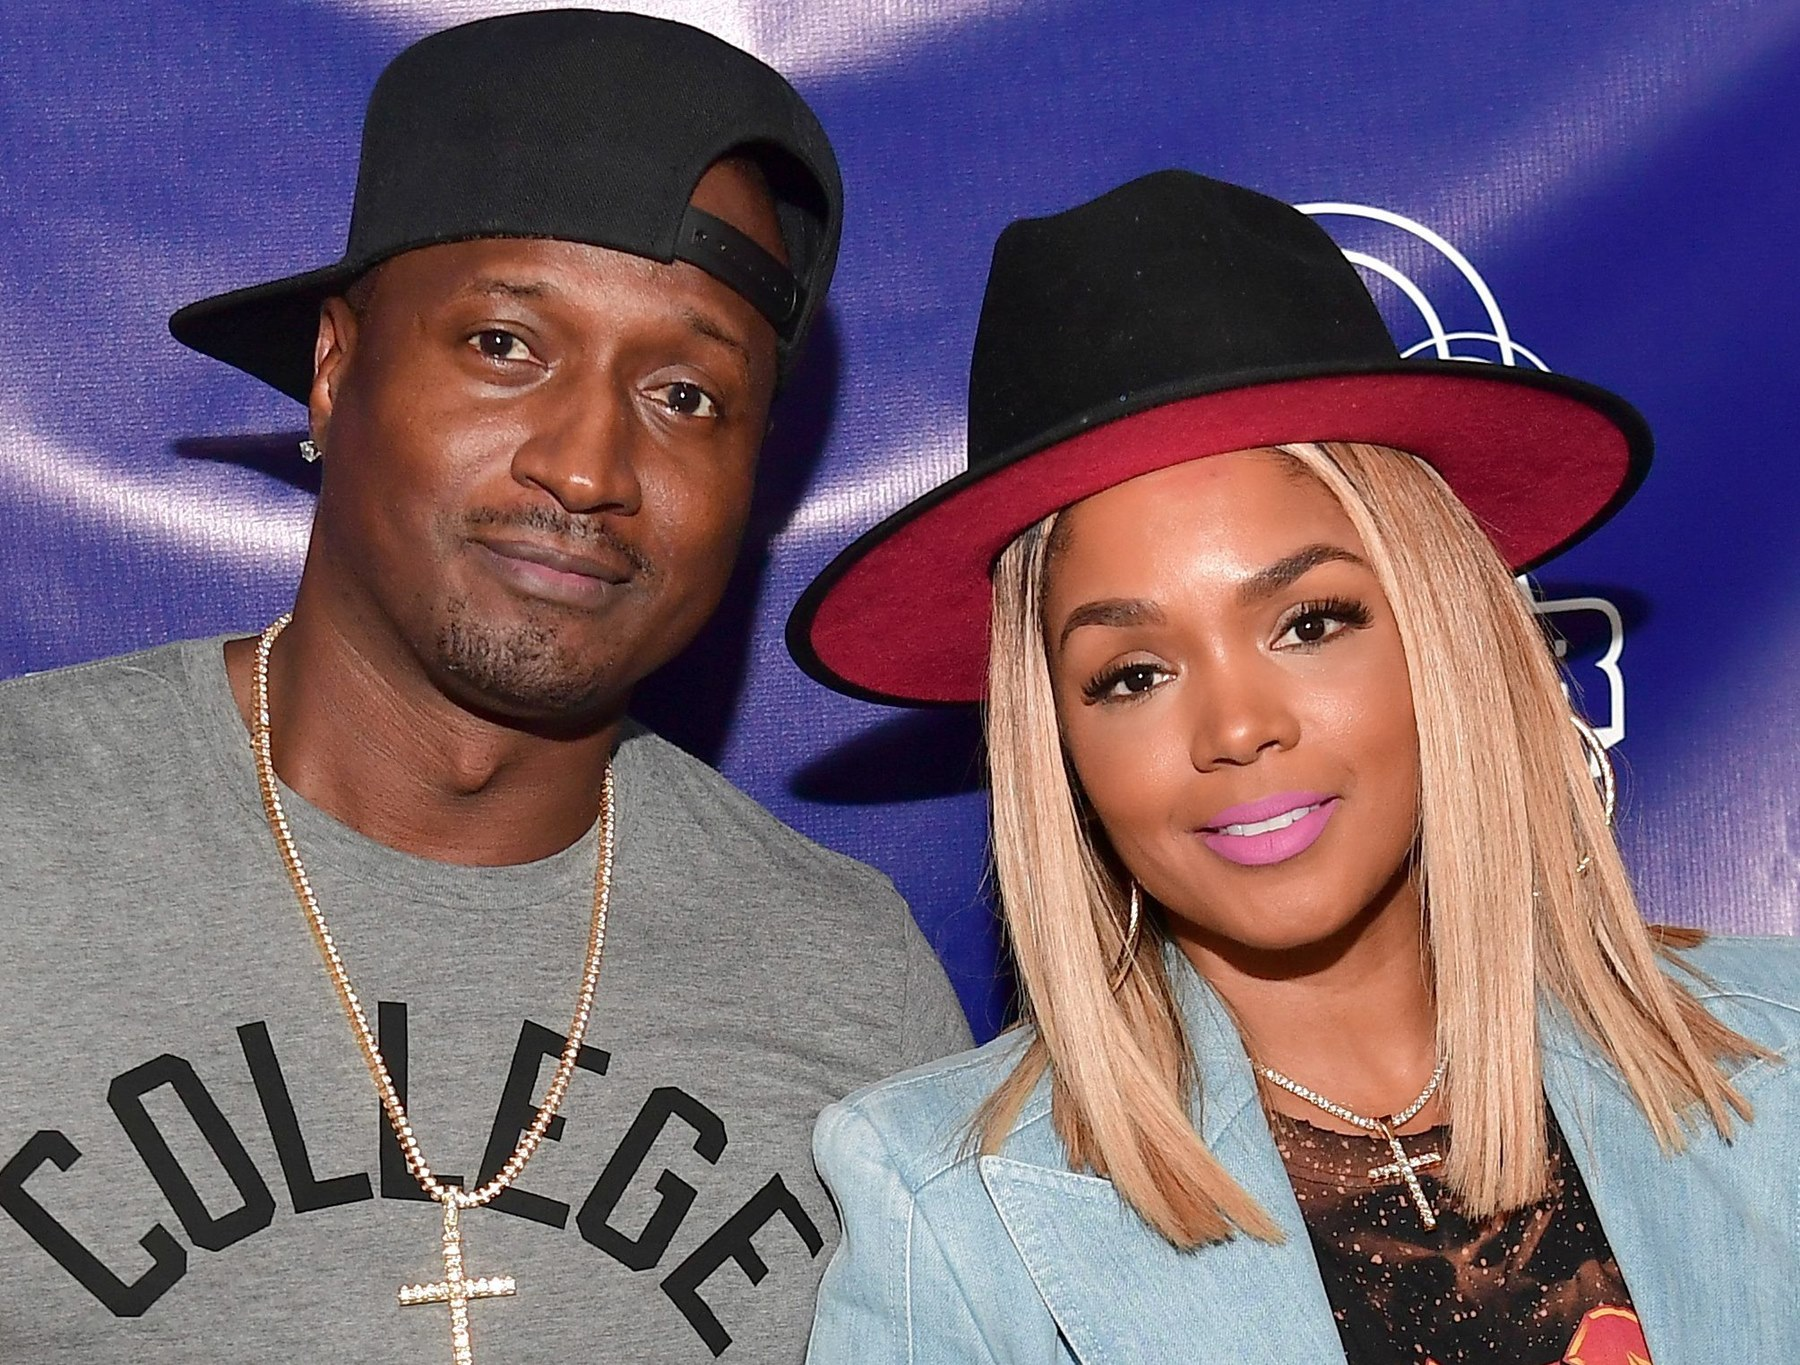 Kirk Frost Rasheeda Marriage Question Fan